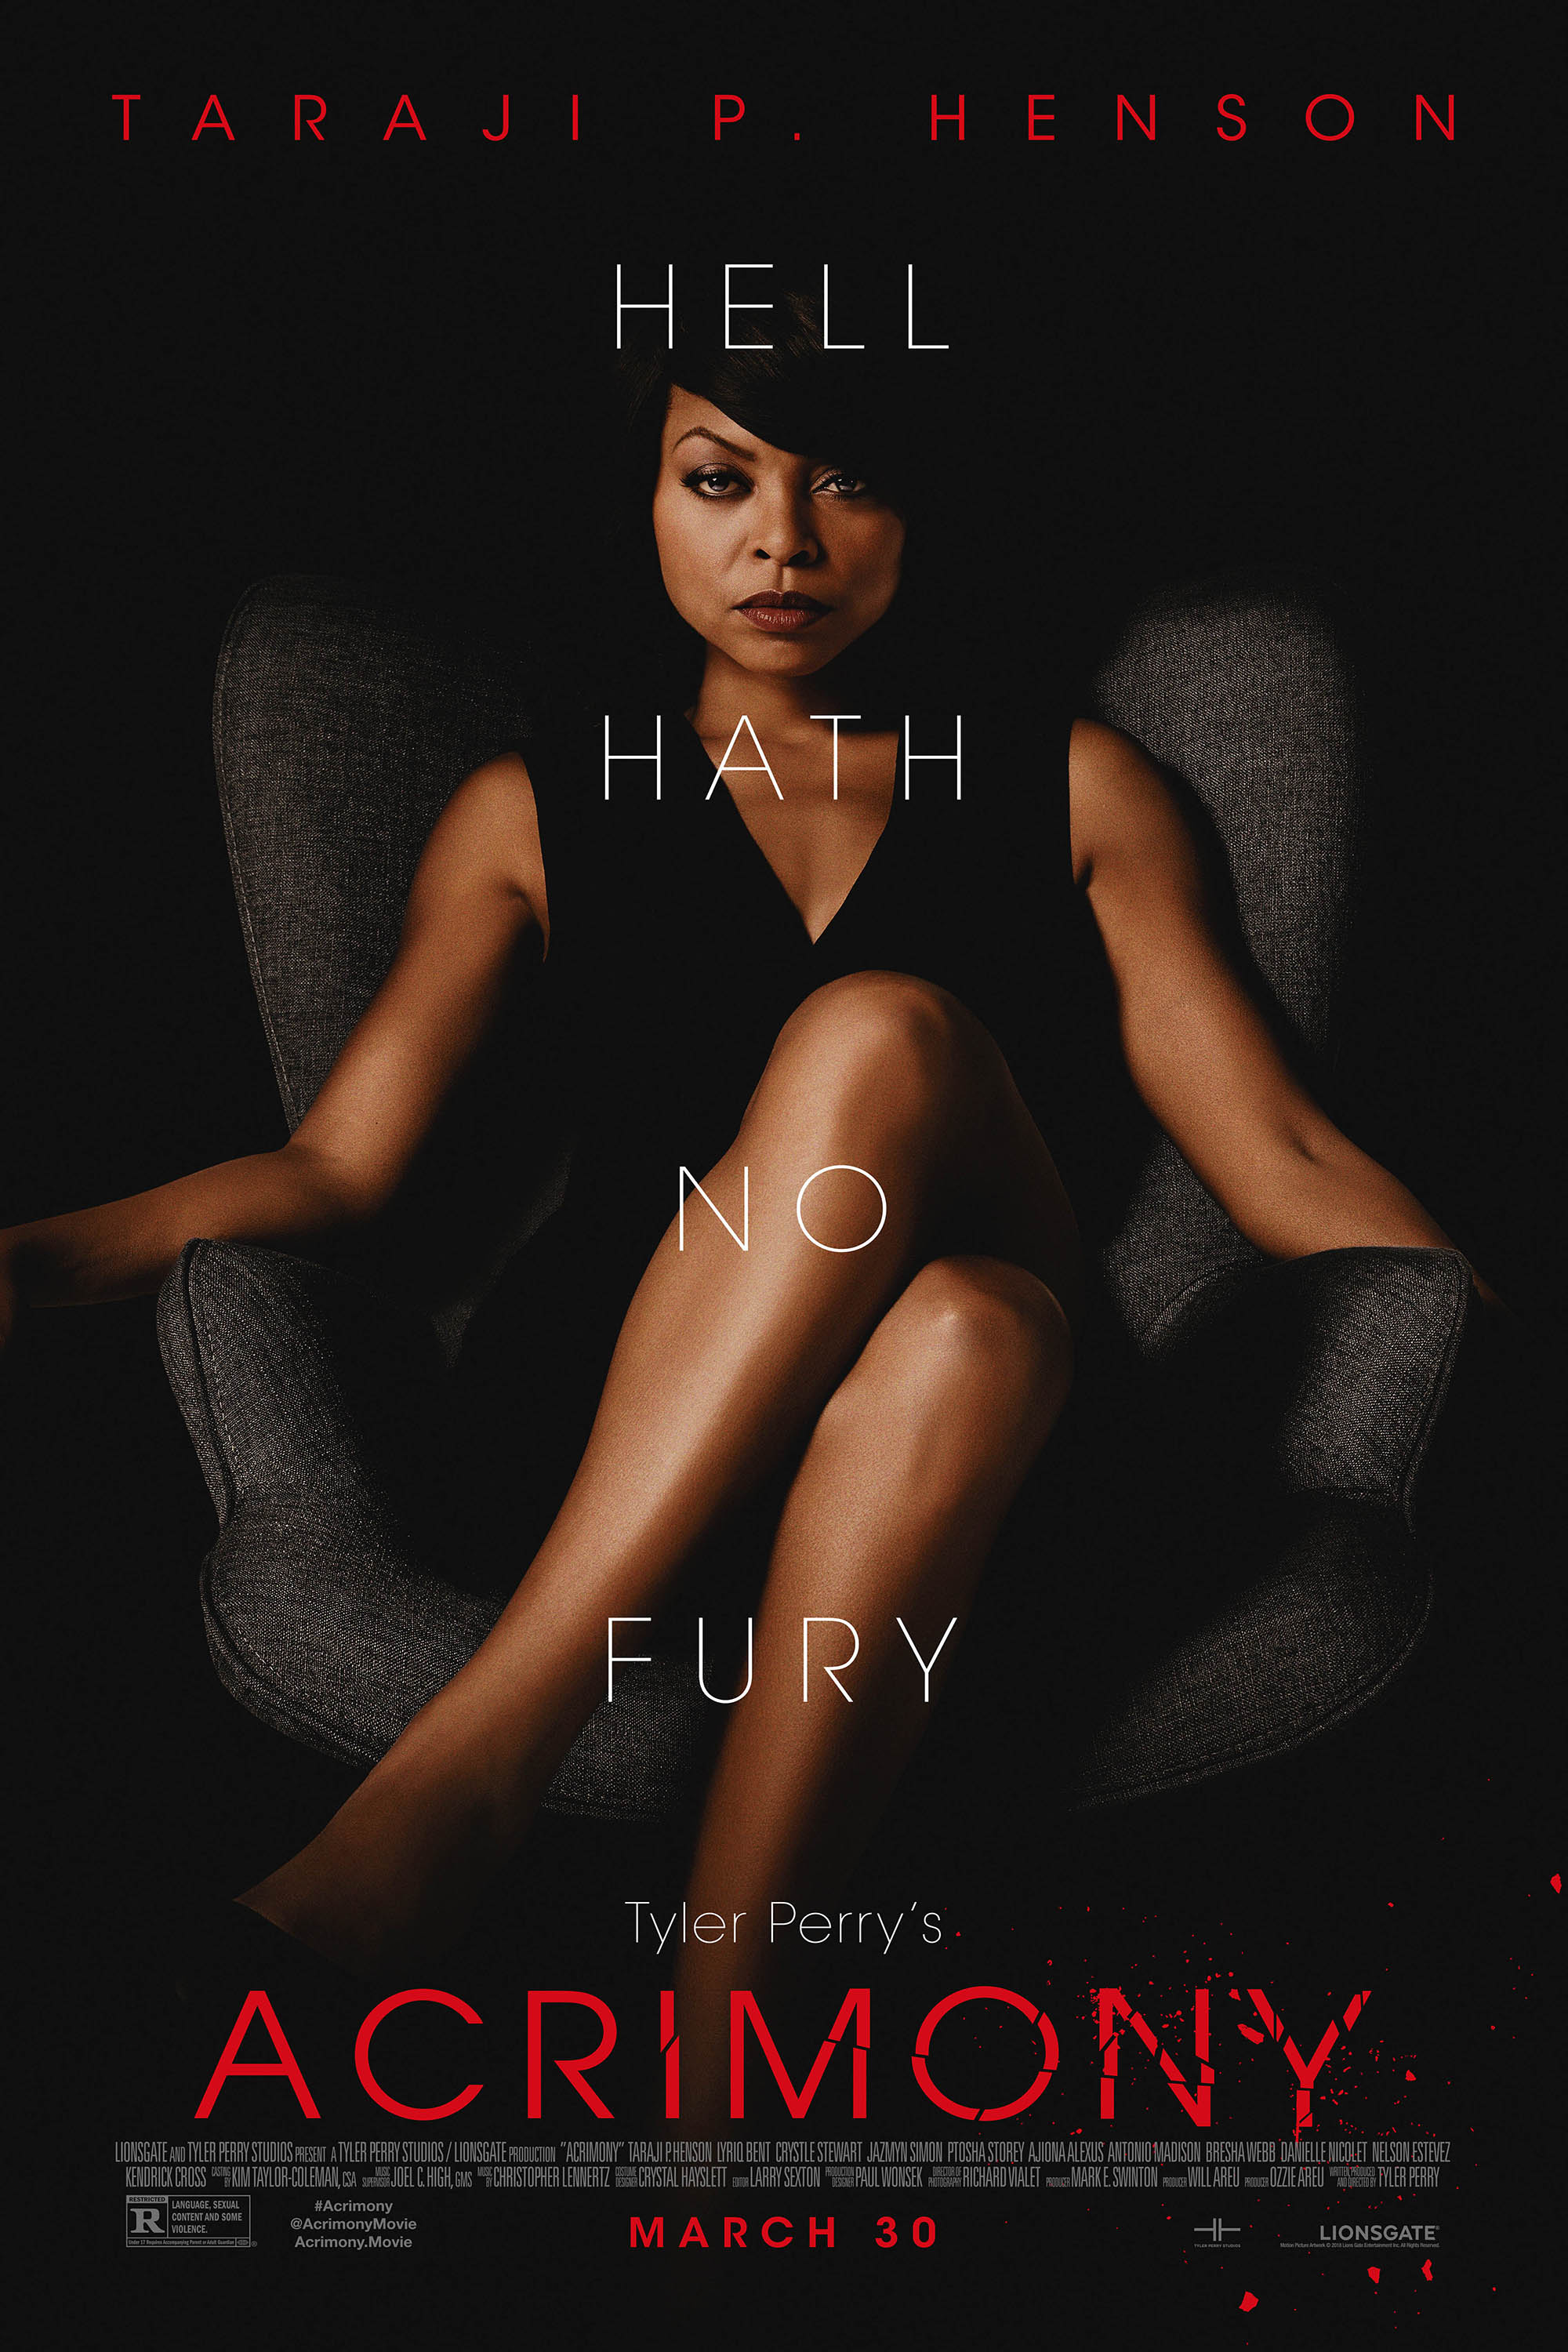 Poster for Tyler Perry's Acrimony